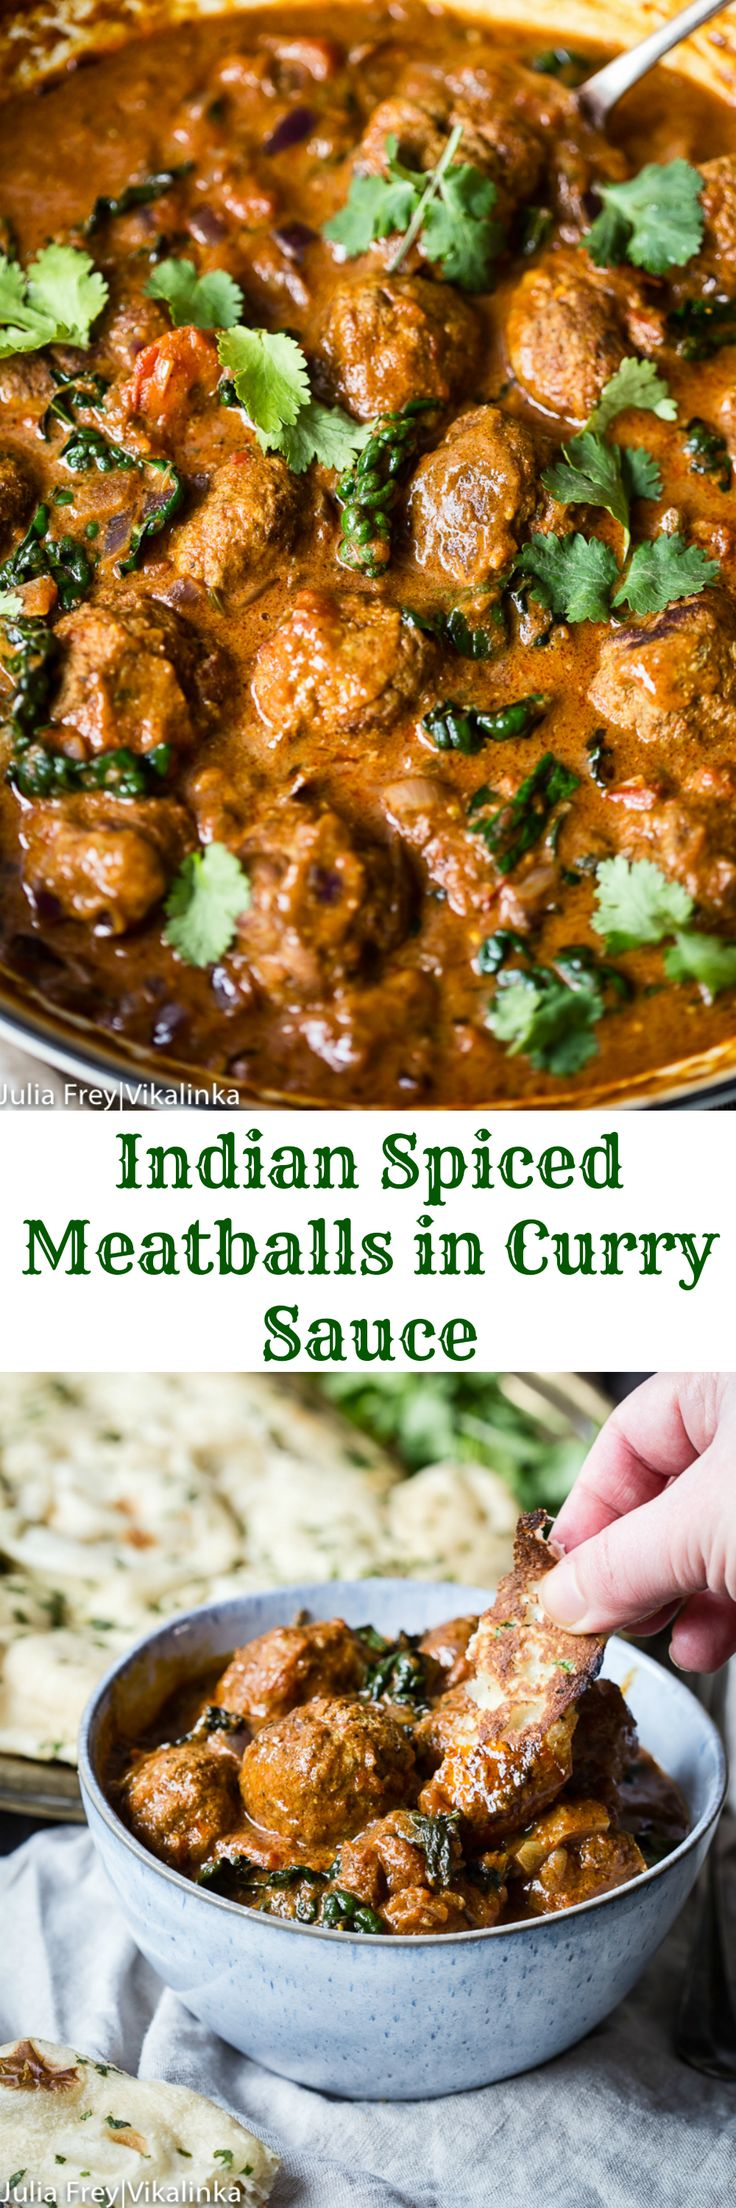 Slow Cooker: Indian Spiced Meatballs in Curry Sauce - Vikalinka...